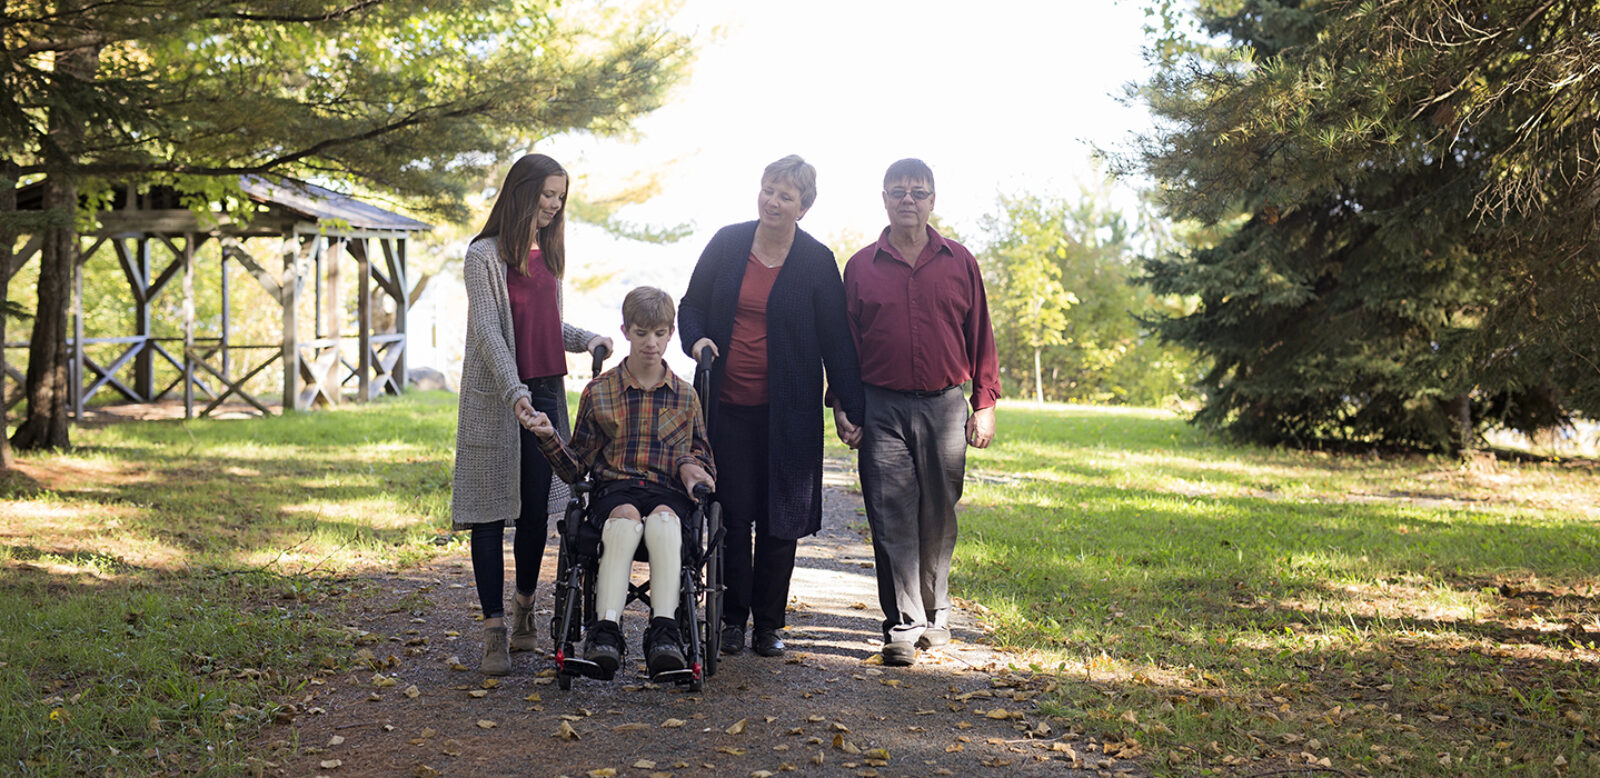 Patrick is in his wheelchair in a forest surrounded by his older parents and sister, holding his hand